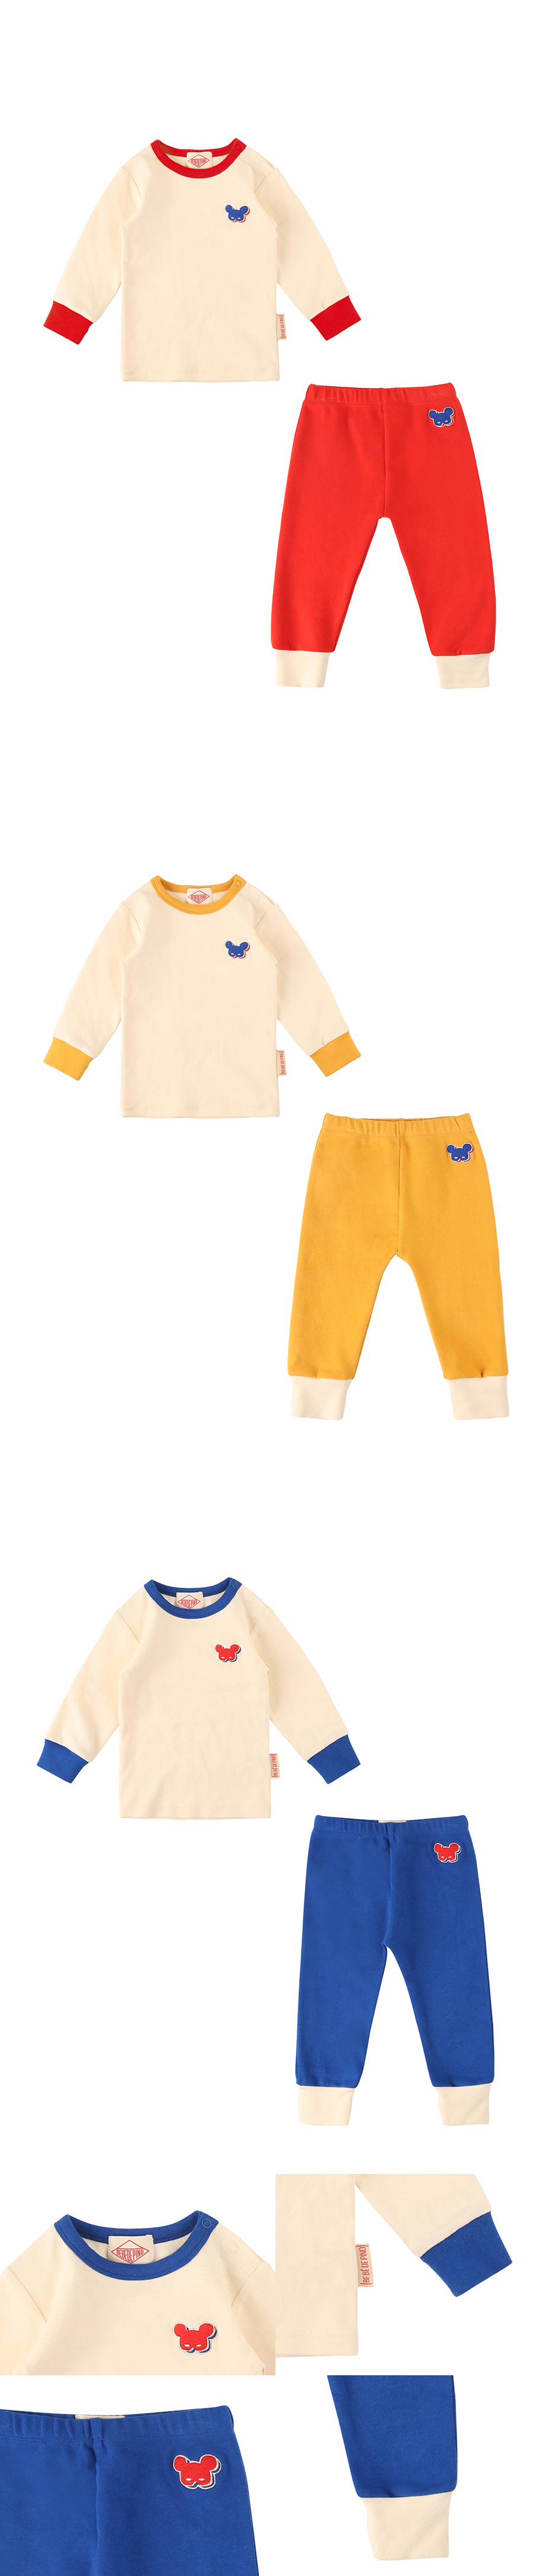 Basic baby shadow pino colorblock homewear set 상세 이미지